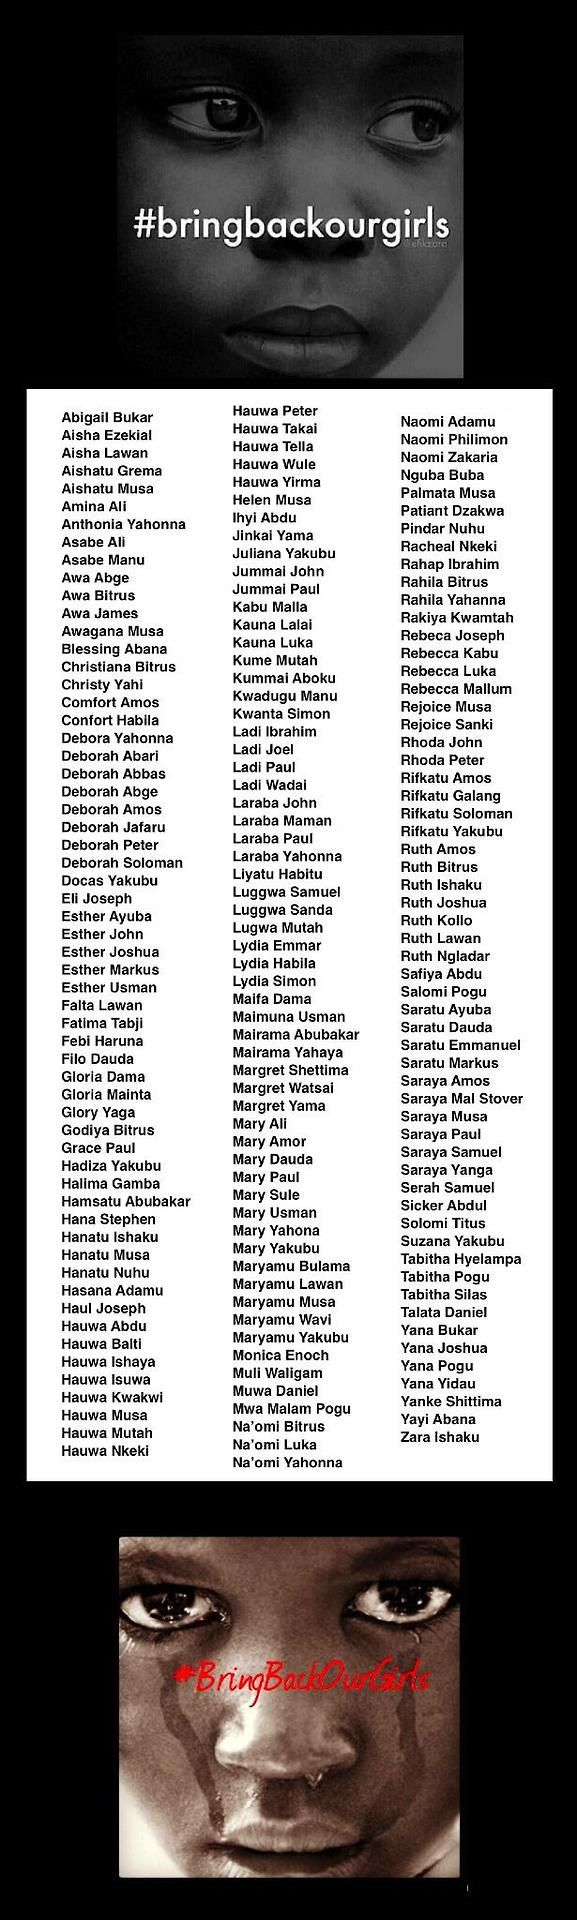 policymic:  These are the names of the 180 still-missing Nigerian girls  Three weeks ago 234 Nigerian schoolgirls were abducted from a boarding school by armed militants suspected to be members of the Boko Haram terrorist group. Some have escaped, but 180 remain lost. Read more |Follow policymic